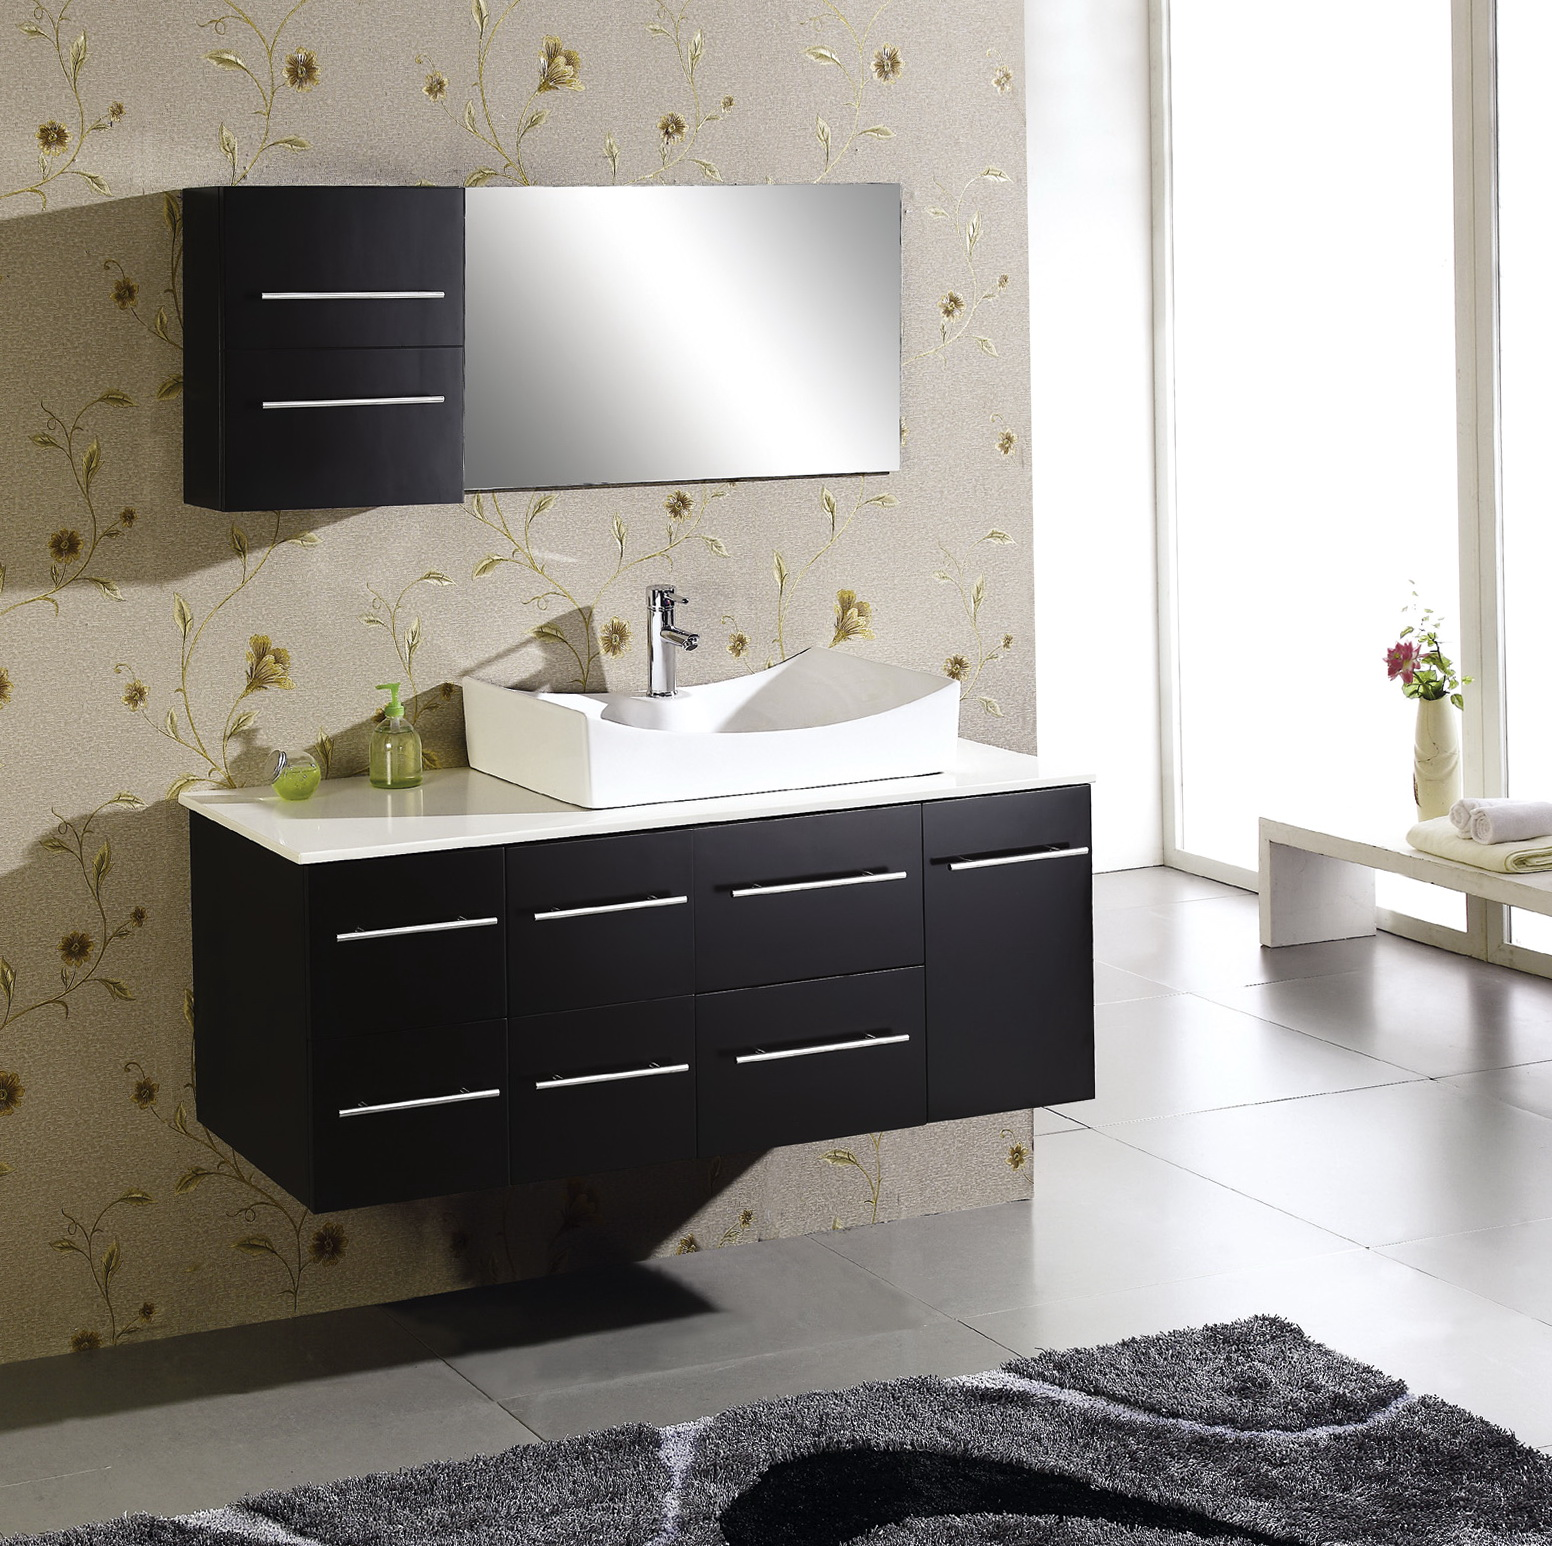 Black Bathroom Vanity Ideas